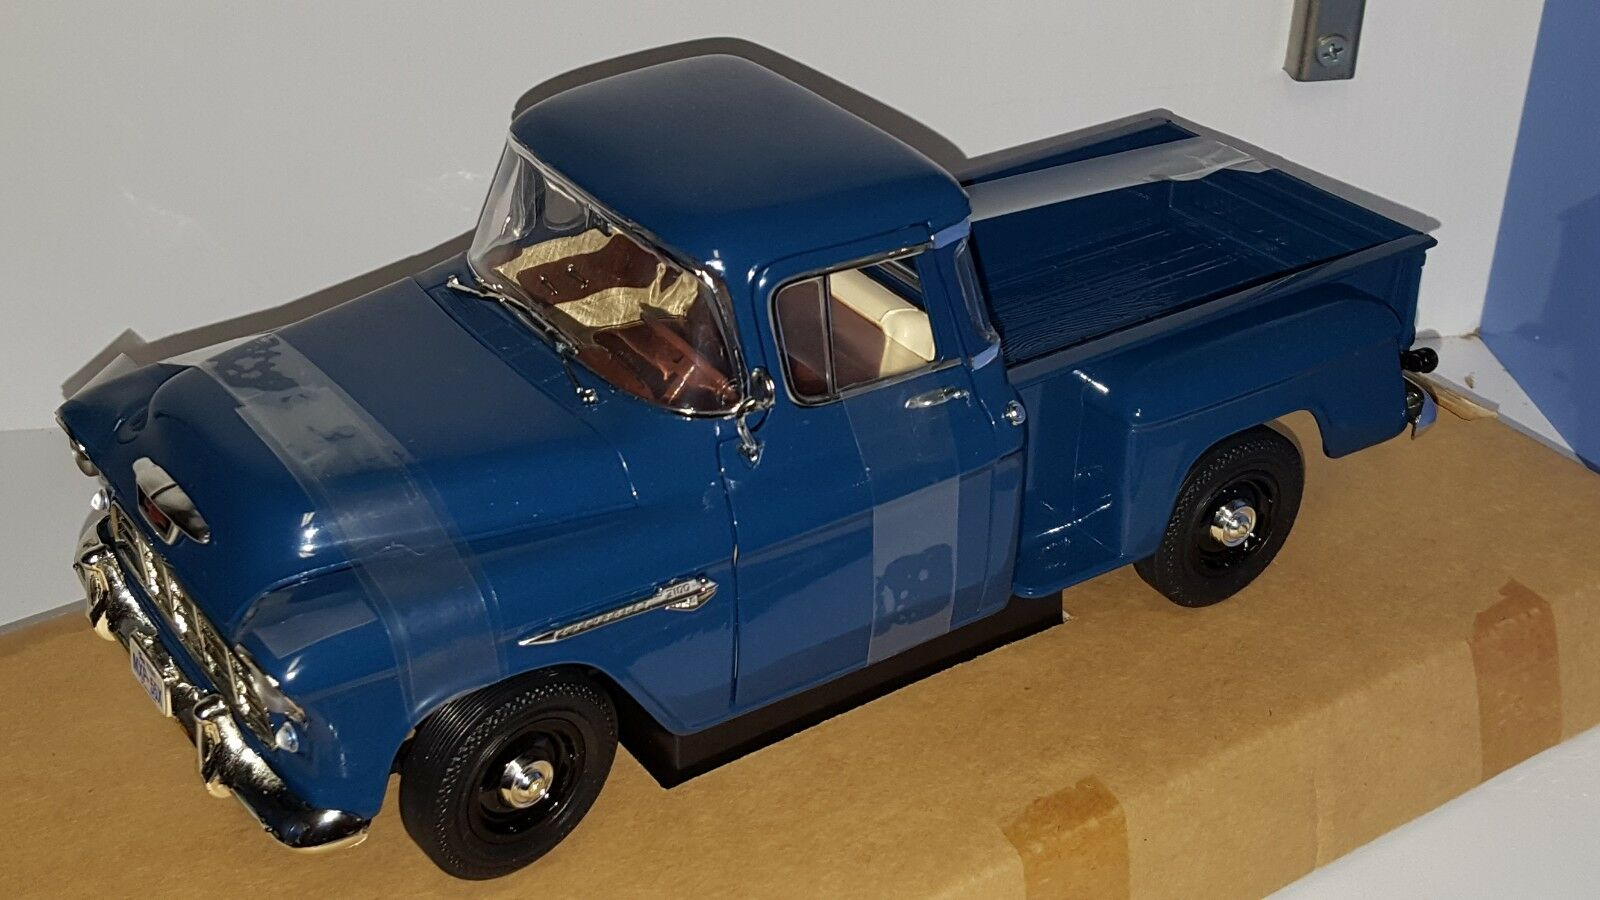 1 18 ERTL CRUISIN' SERIES OSCAR'S OSCAR'S OSCAR'S GAS STATION 1955 CHEVROLET STEP SIDE blueE  od eabc68